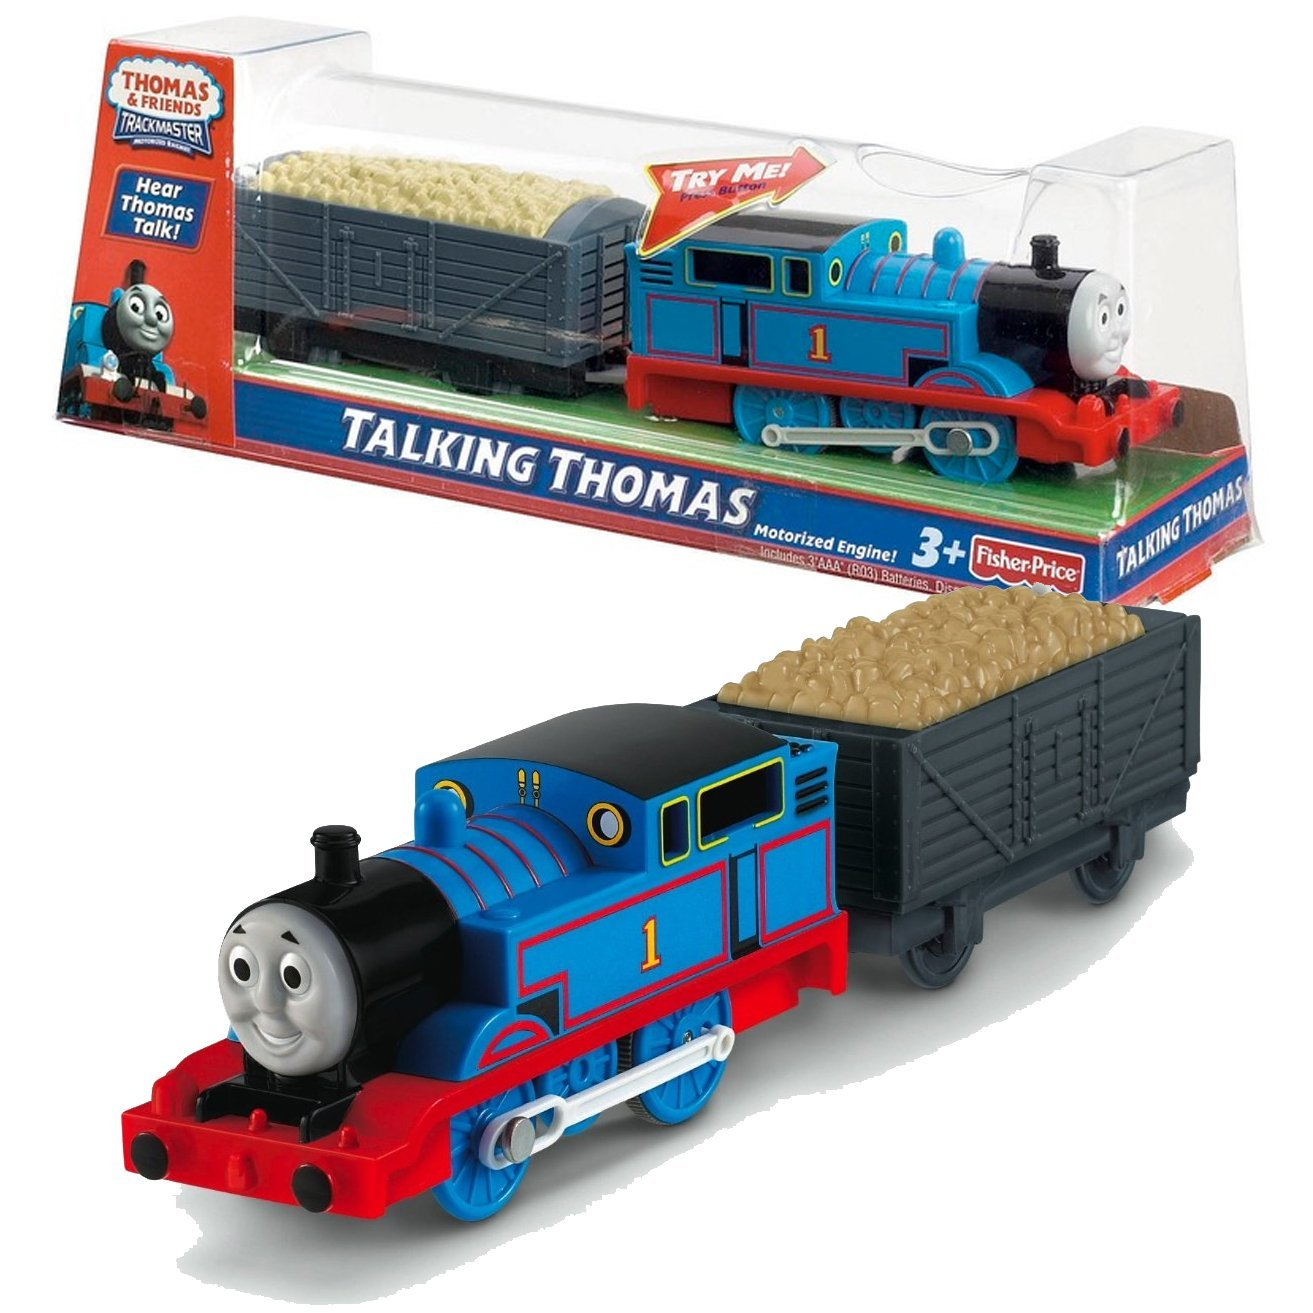 "Fisher Price Year 2012 Thomas and Friends Trackmaster ""TALKING"" Series Motorized Railway Battery Powered Tank Engine Train Set - TALKING THOMAS with Rock Loaded Wagon"